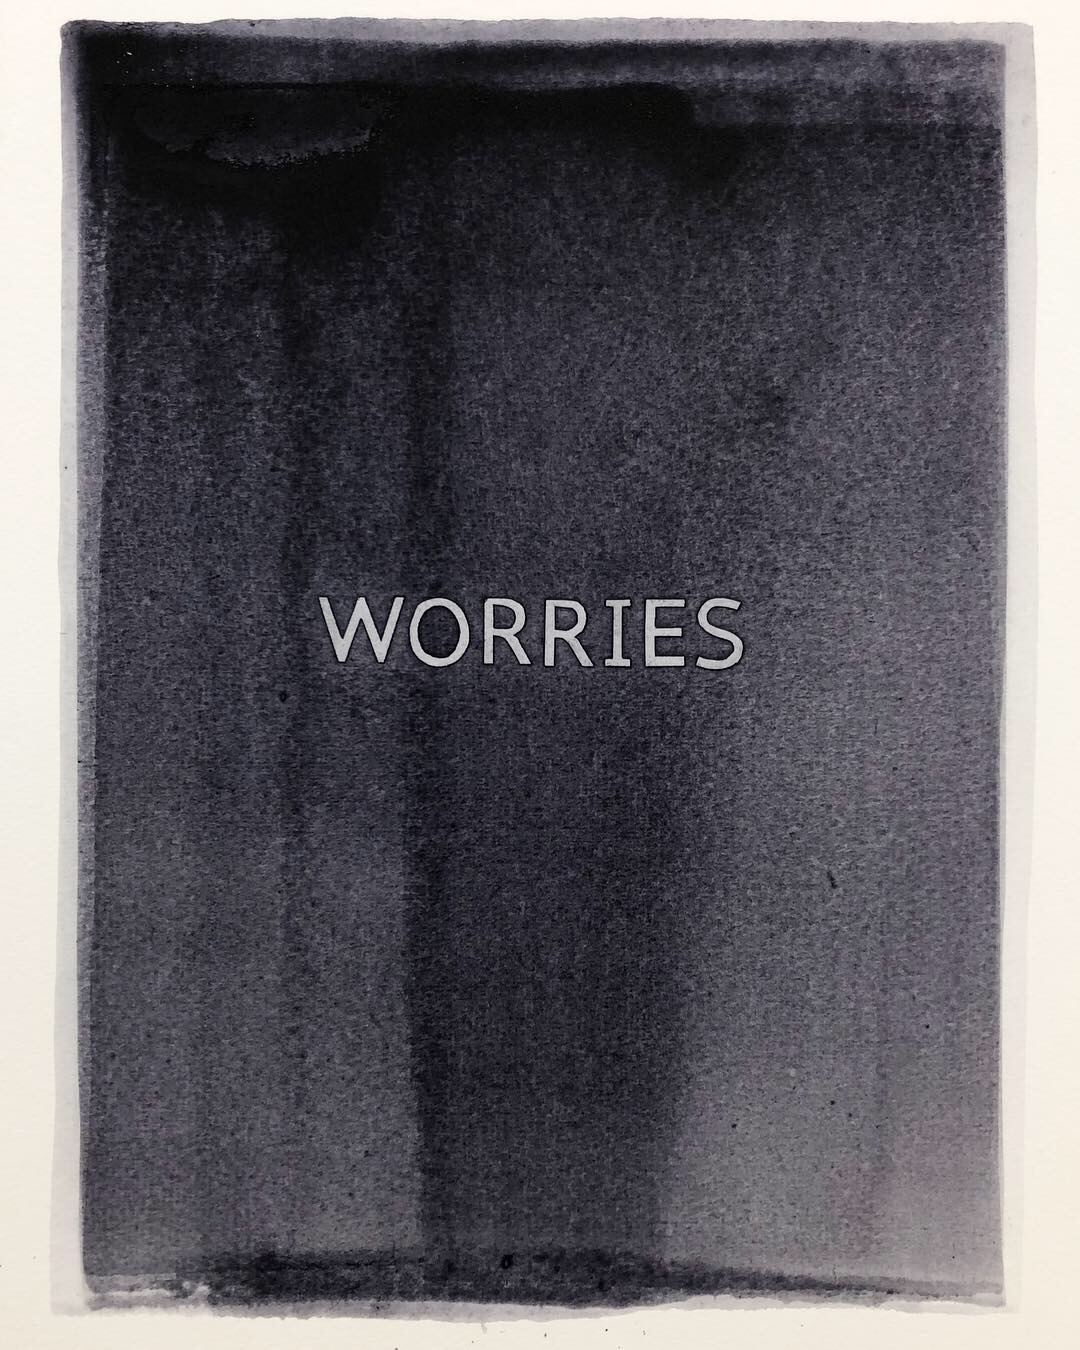 The Very Least Of Our Worries . 2019. Watercolour and polymer varnish on paper. Panel 6. 36.5x27cm